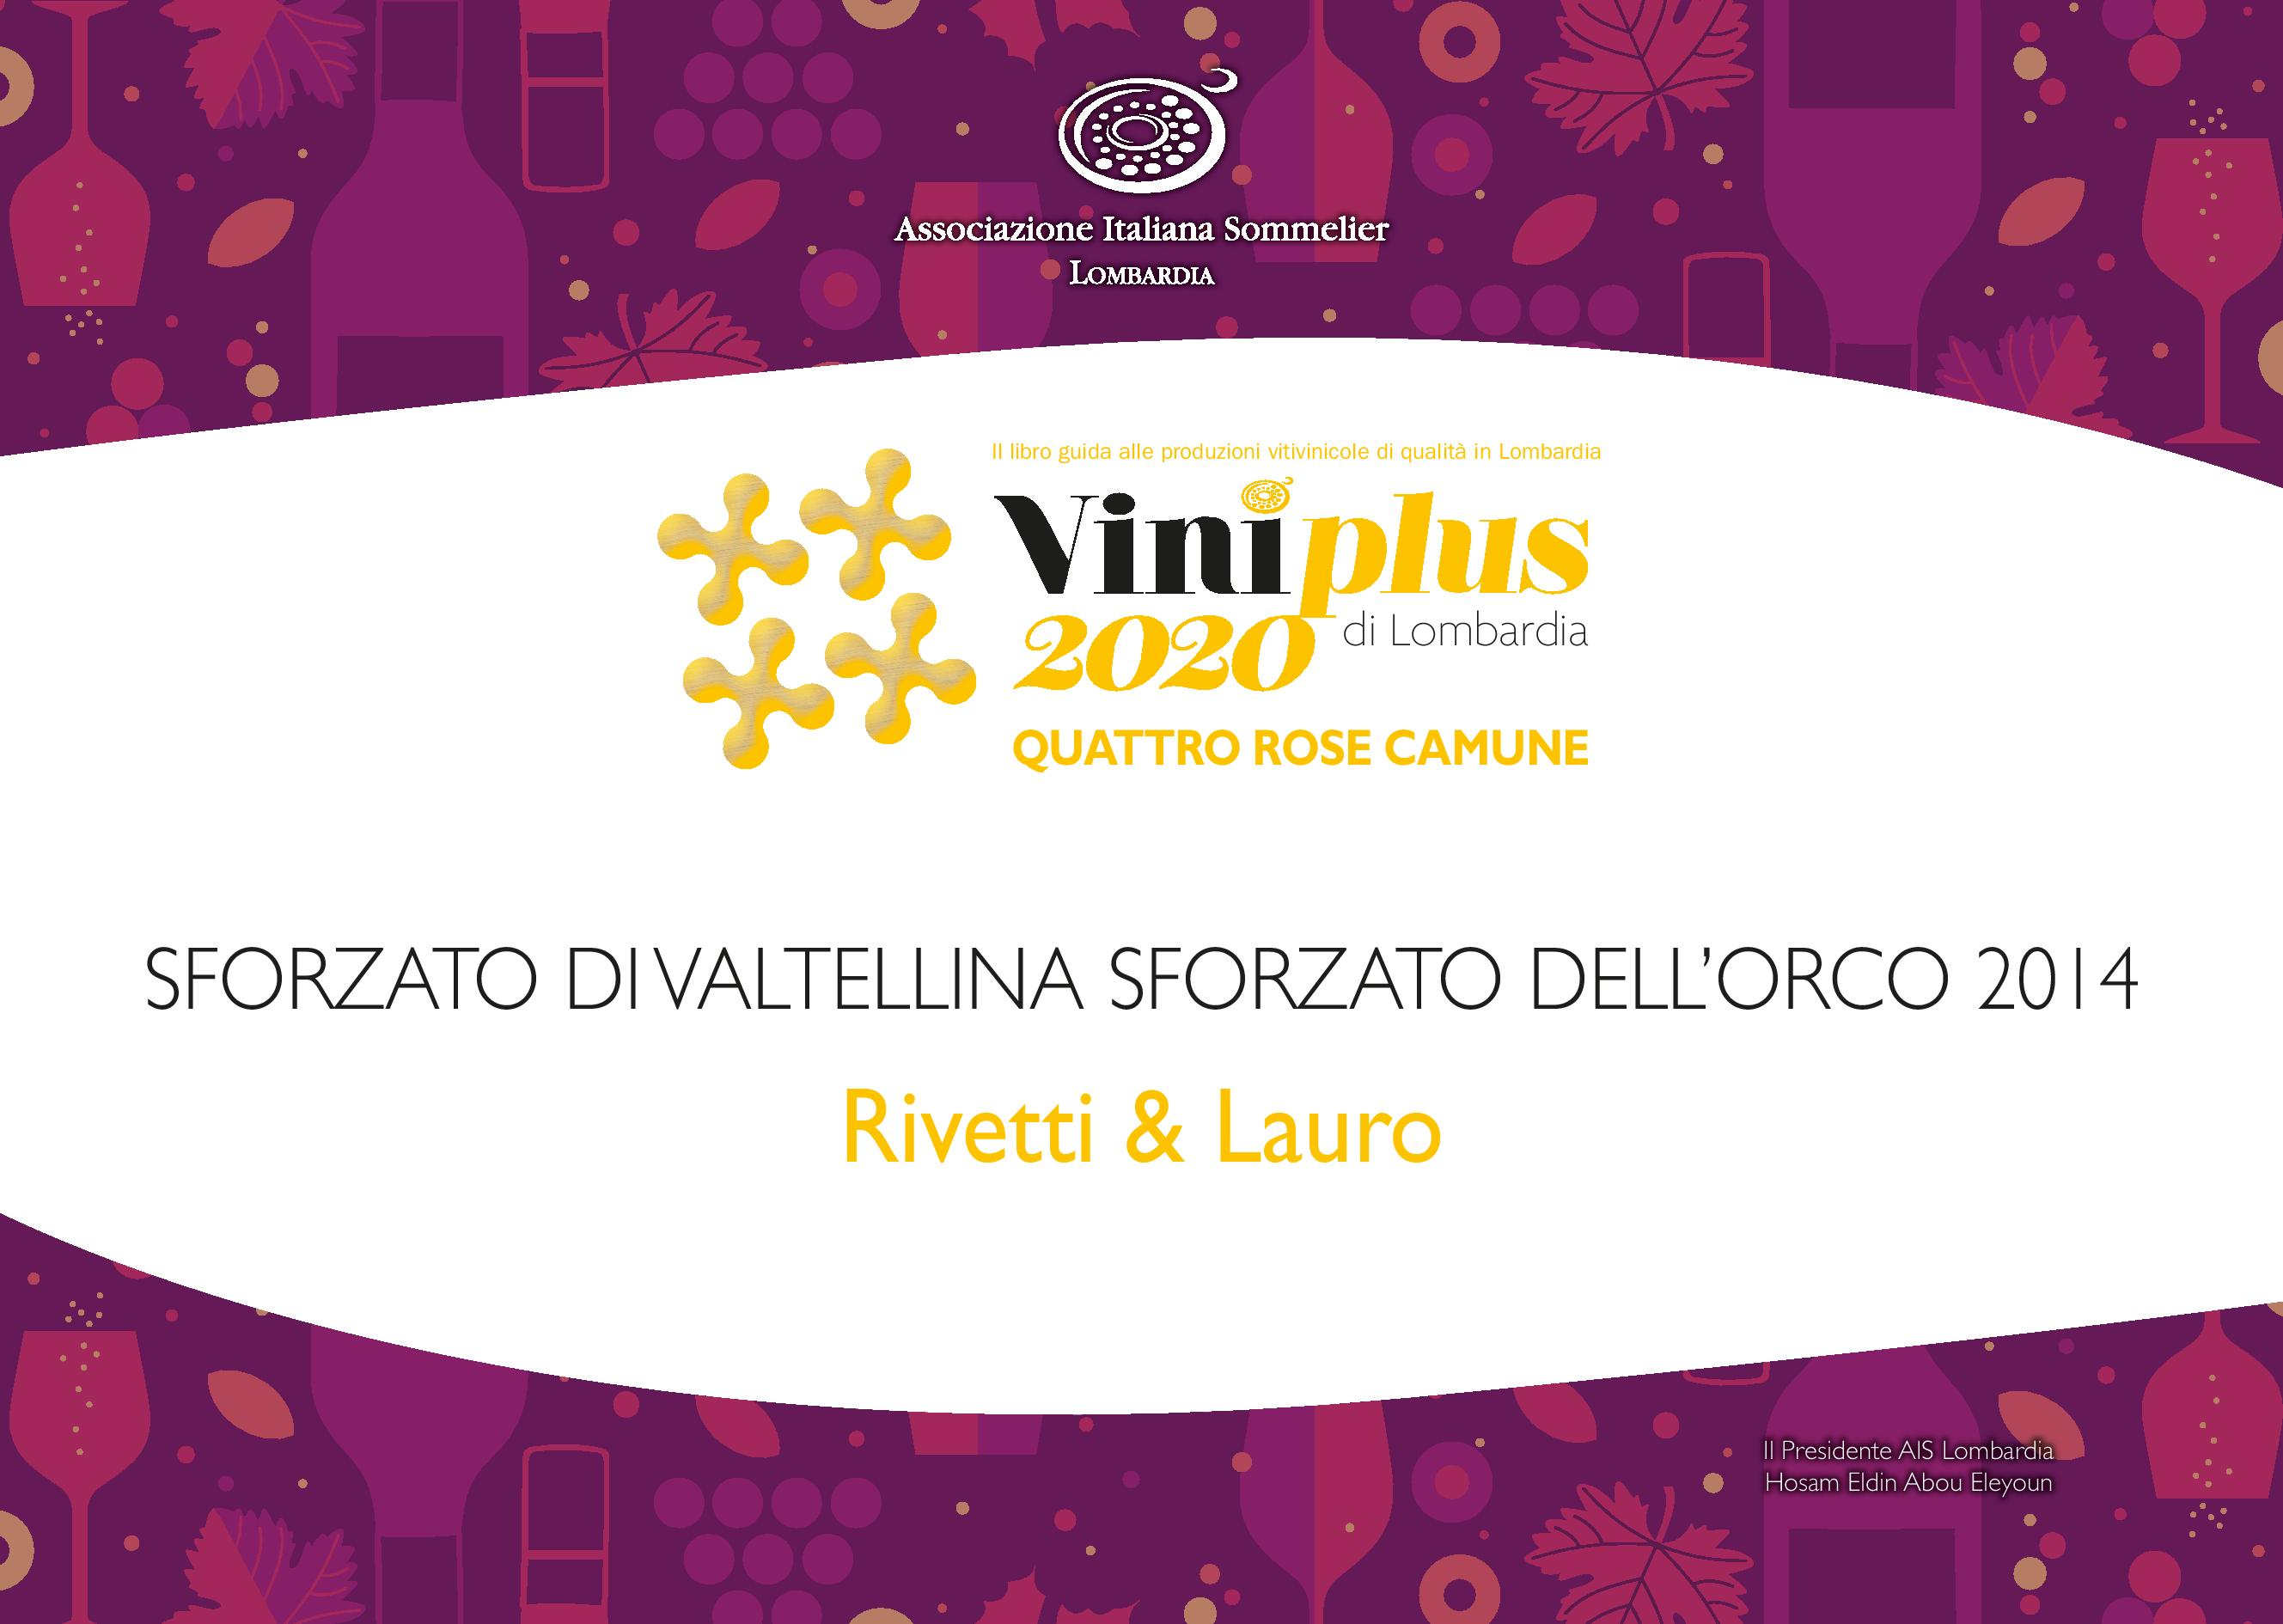 Vini Plus 2020 - 4 Rose Camune